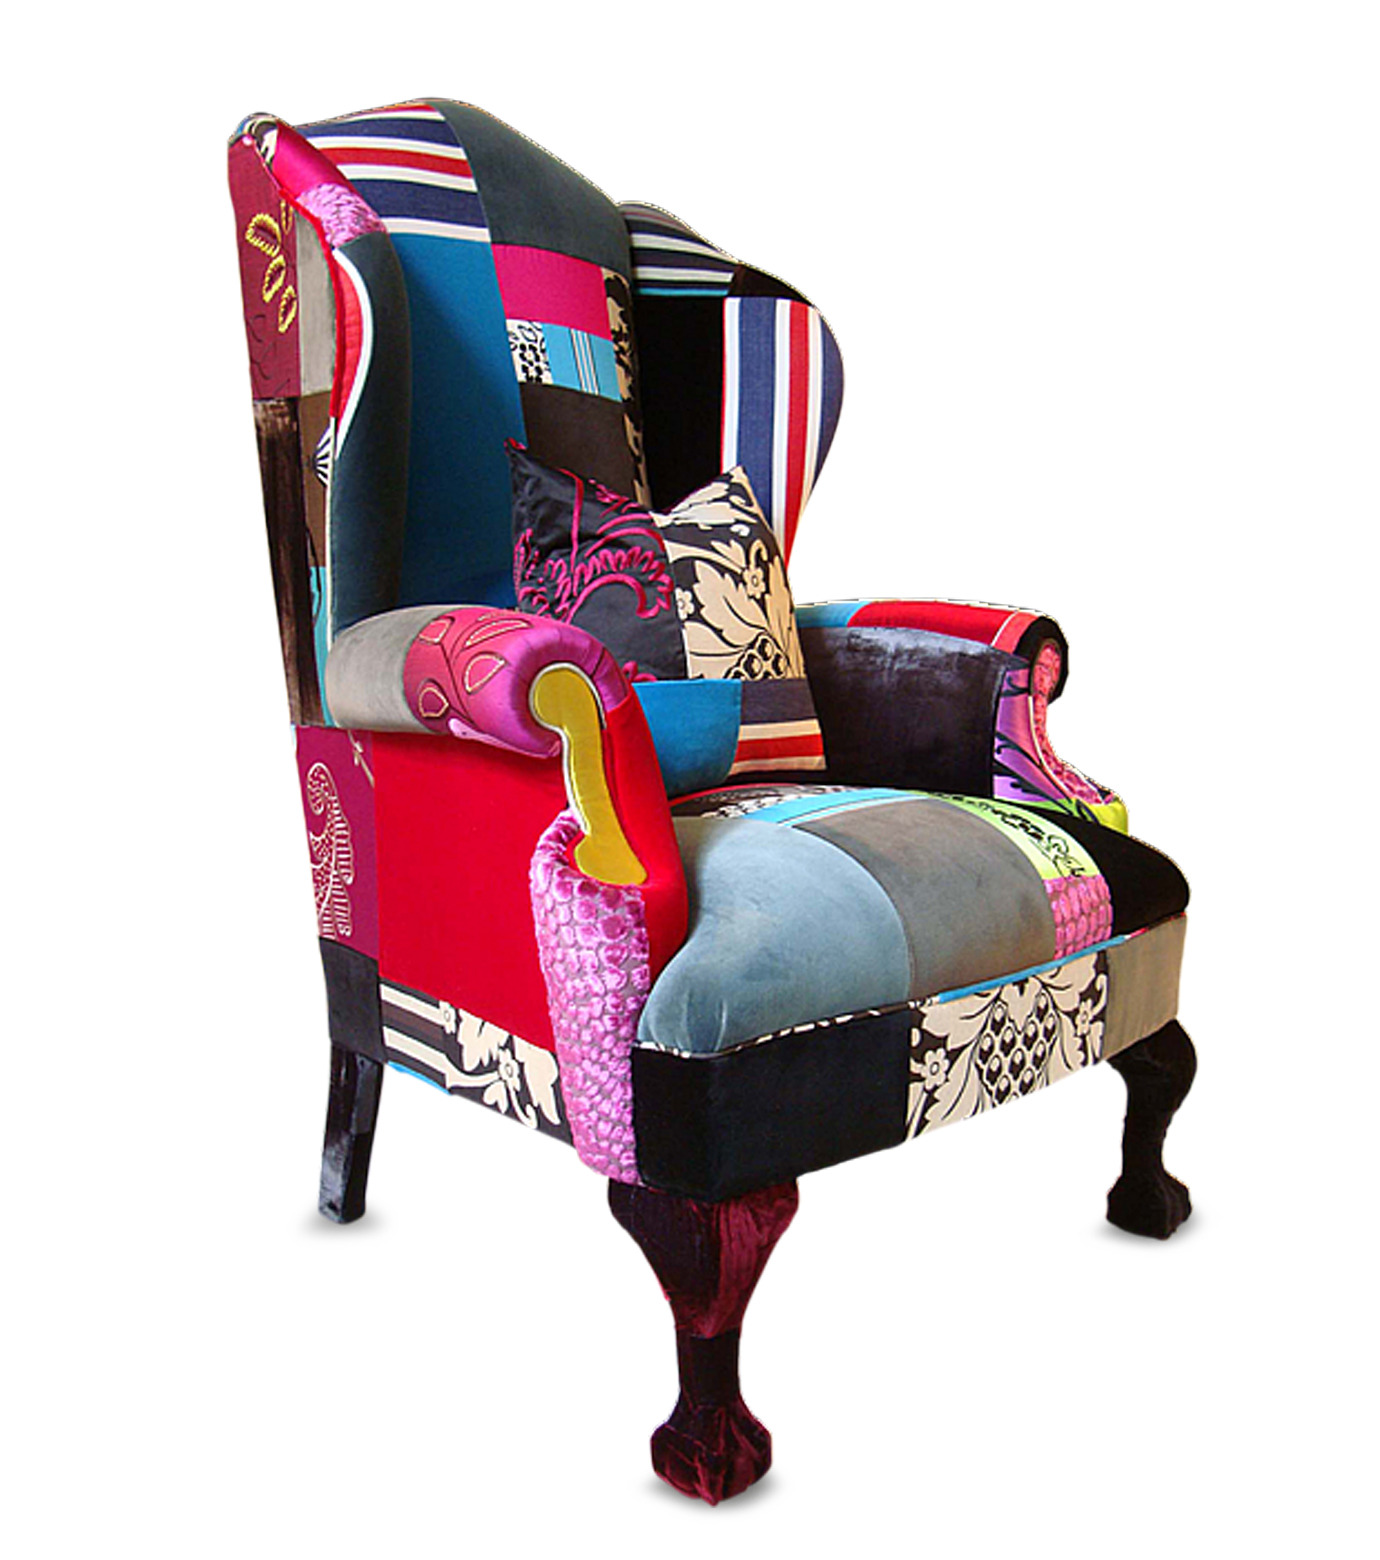 Squintlimited(スクイントリミテッド)のSelkirk wing chair-NONE-10-0 拡大詳細画像2